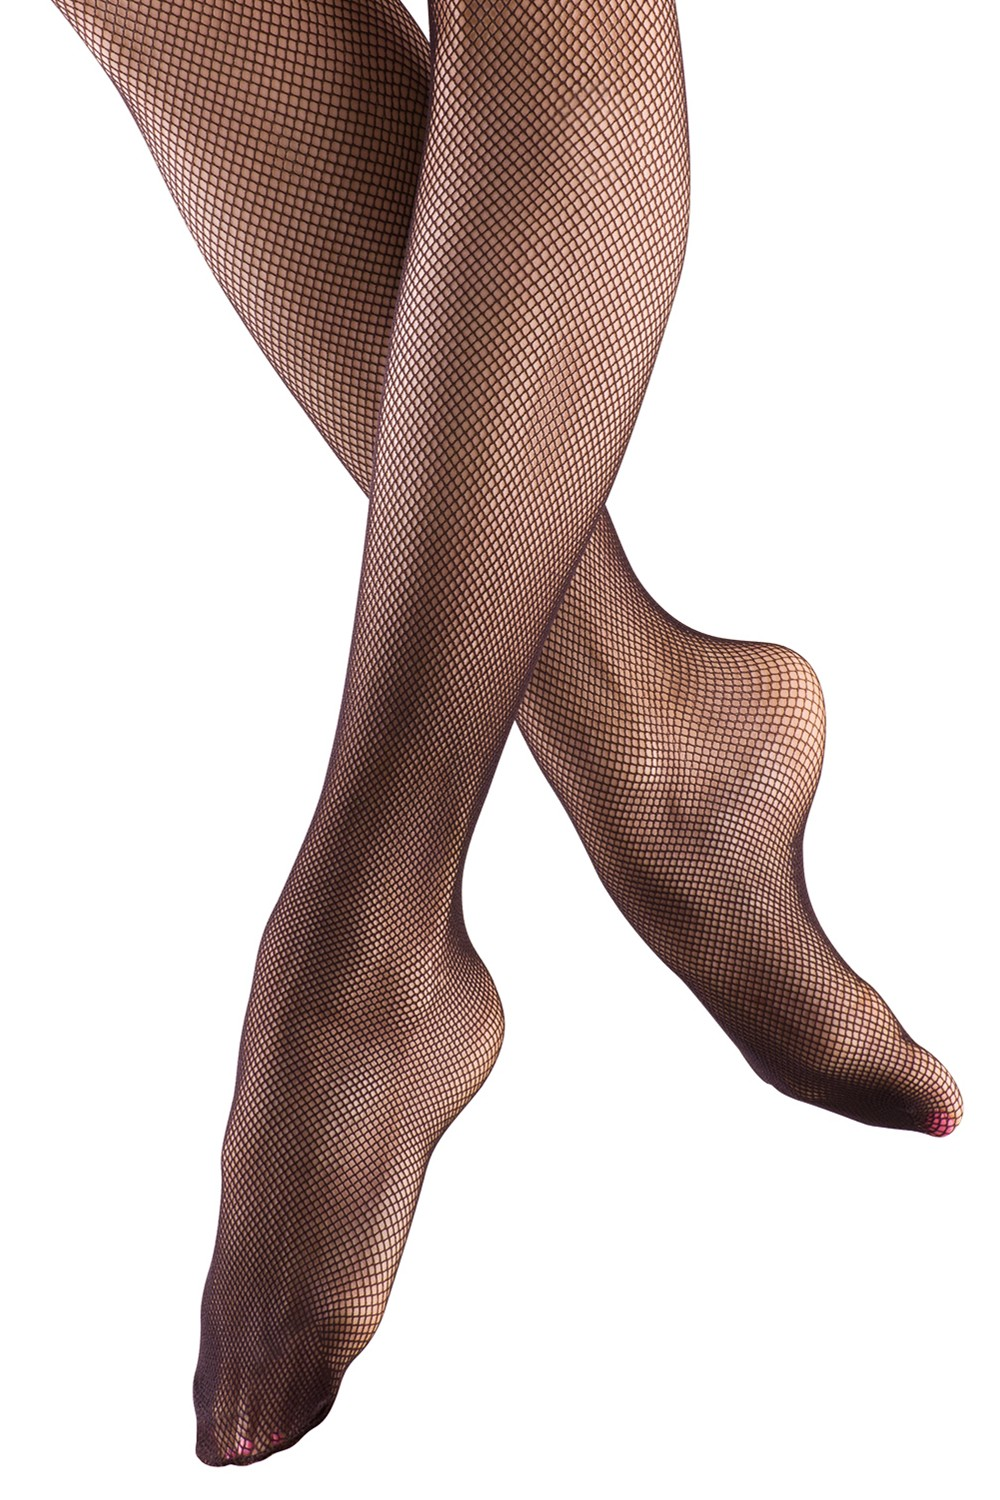 Ladies Fishnet Tight Women's Dance Tights